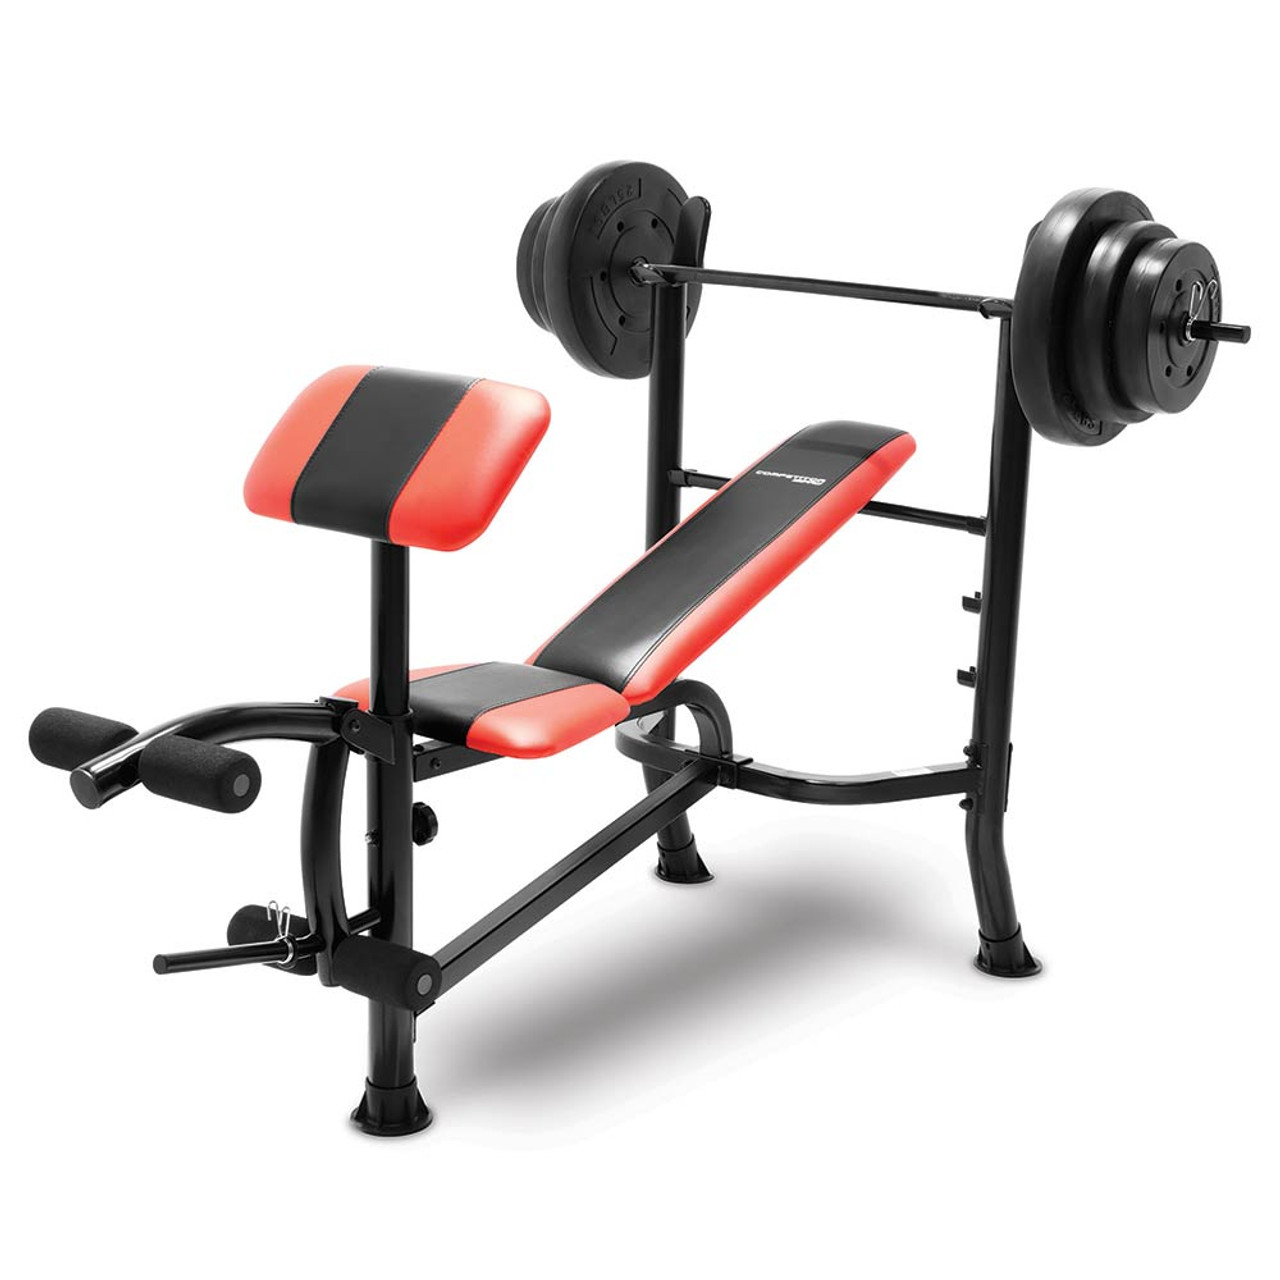 Competitor bench 100 lb weight set cb 2982 quality strength Weight set and bench